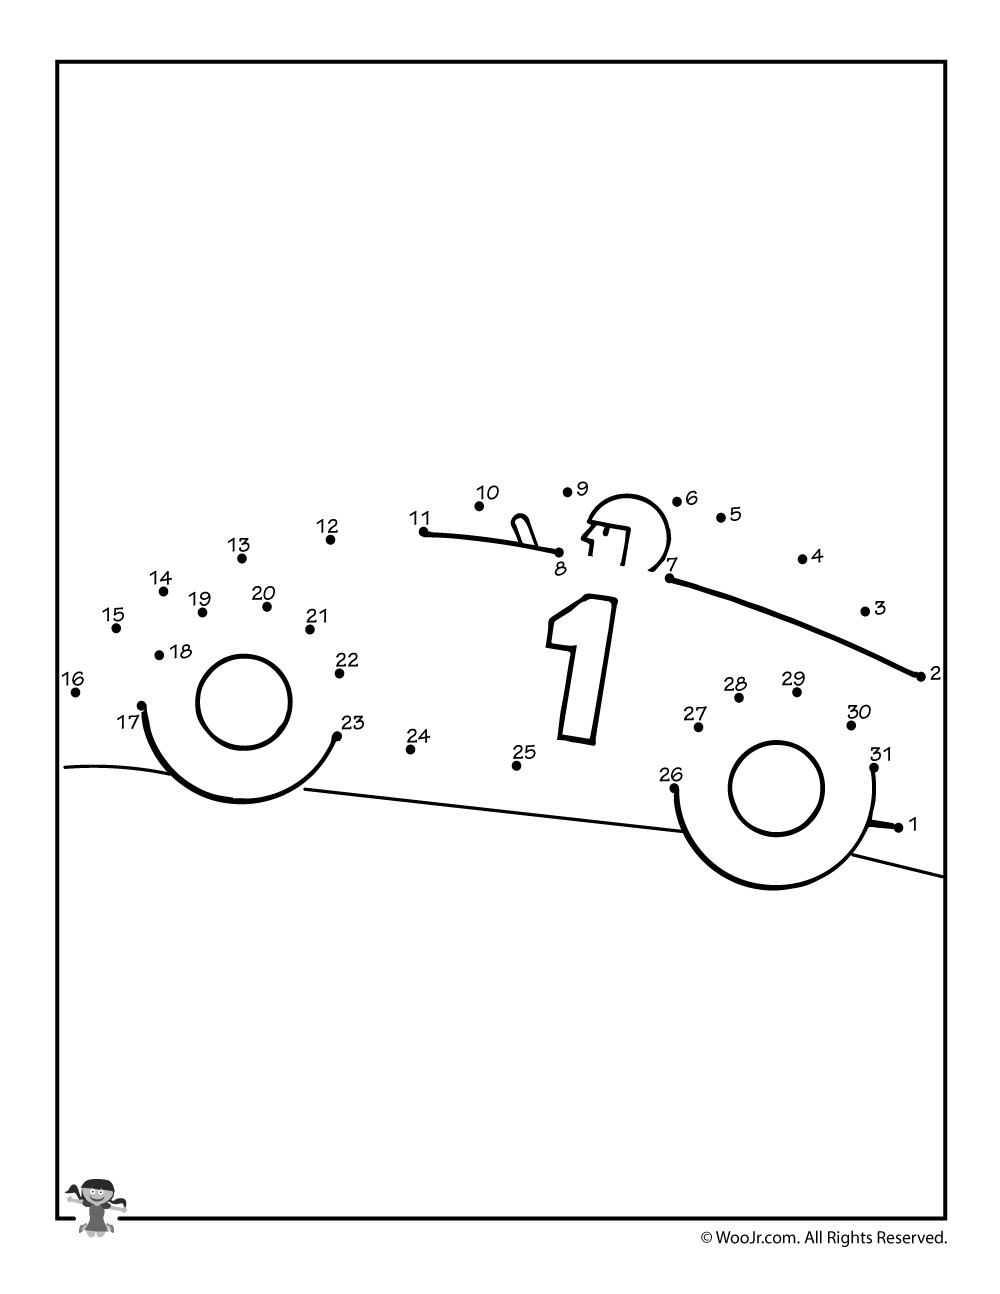 Abc Connect the Dots Printable Coloring Pages Amazing Connect the Dots Ideas